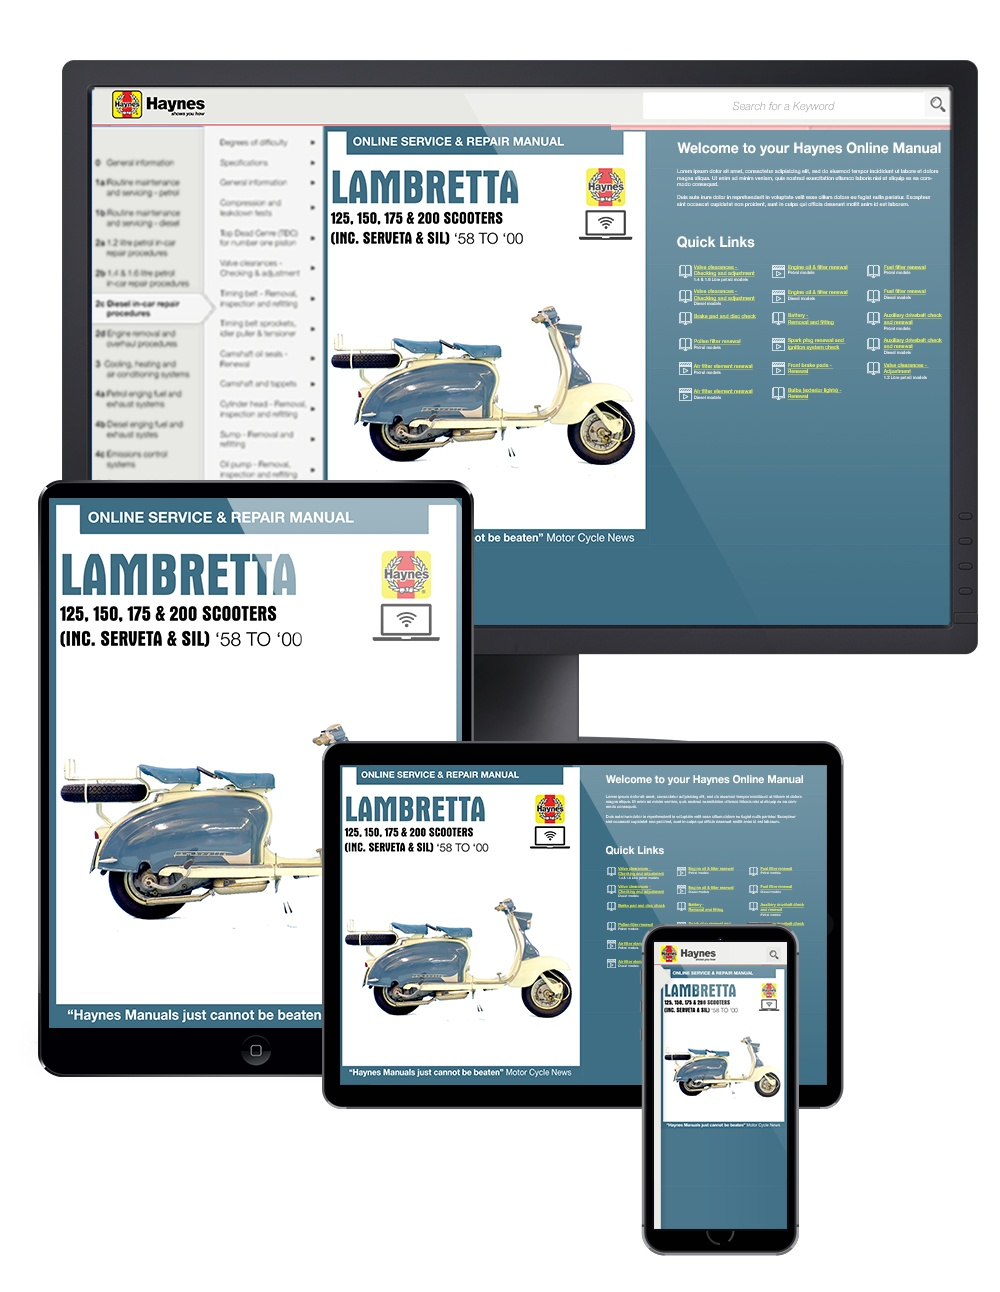 Manual cover for Lambretta Scooters (1958-2000) Haynes Online Manual